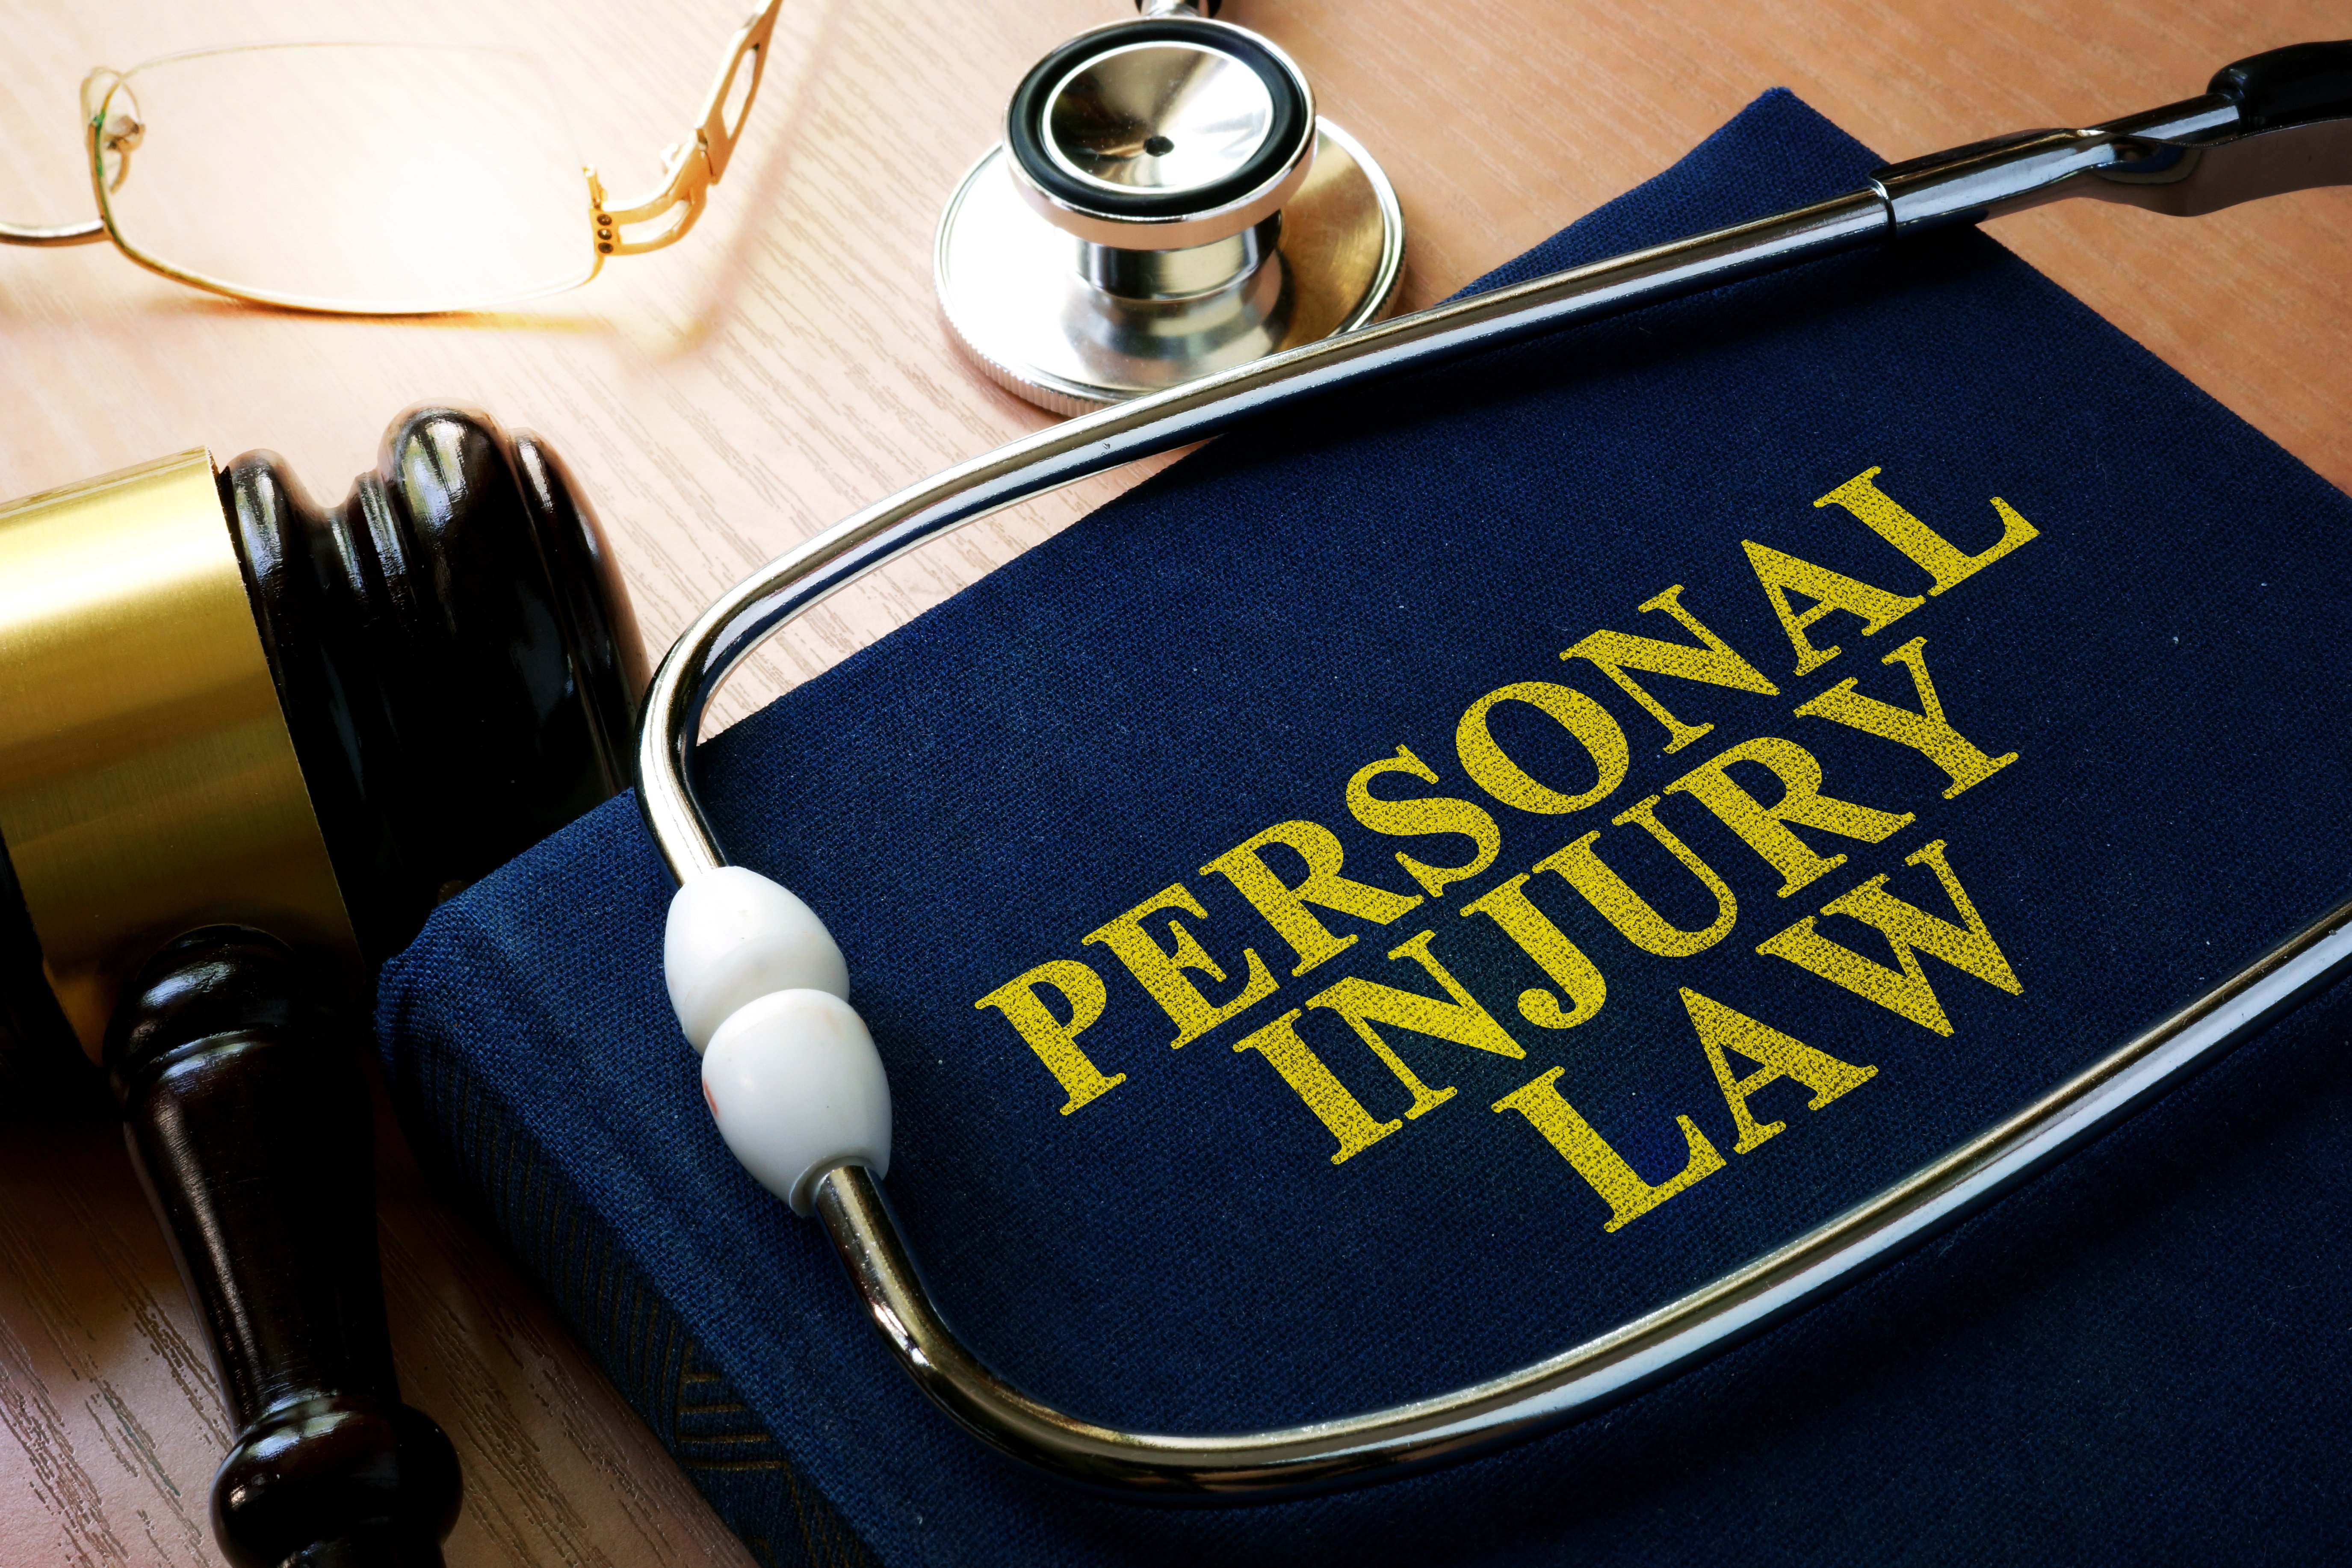 personal injury law book with gavel and stethoscope in foreground